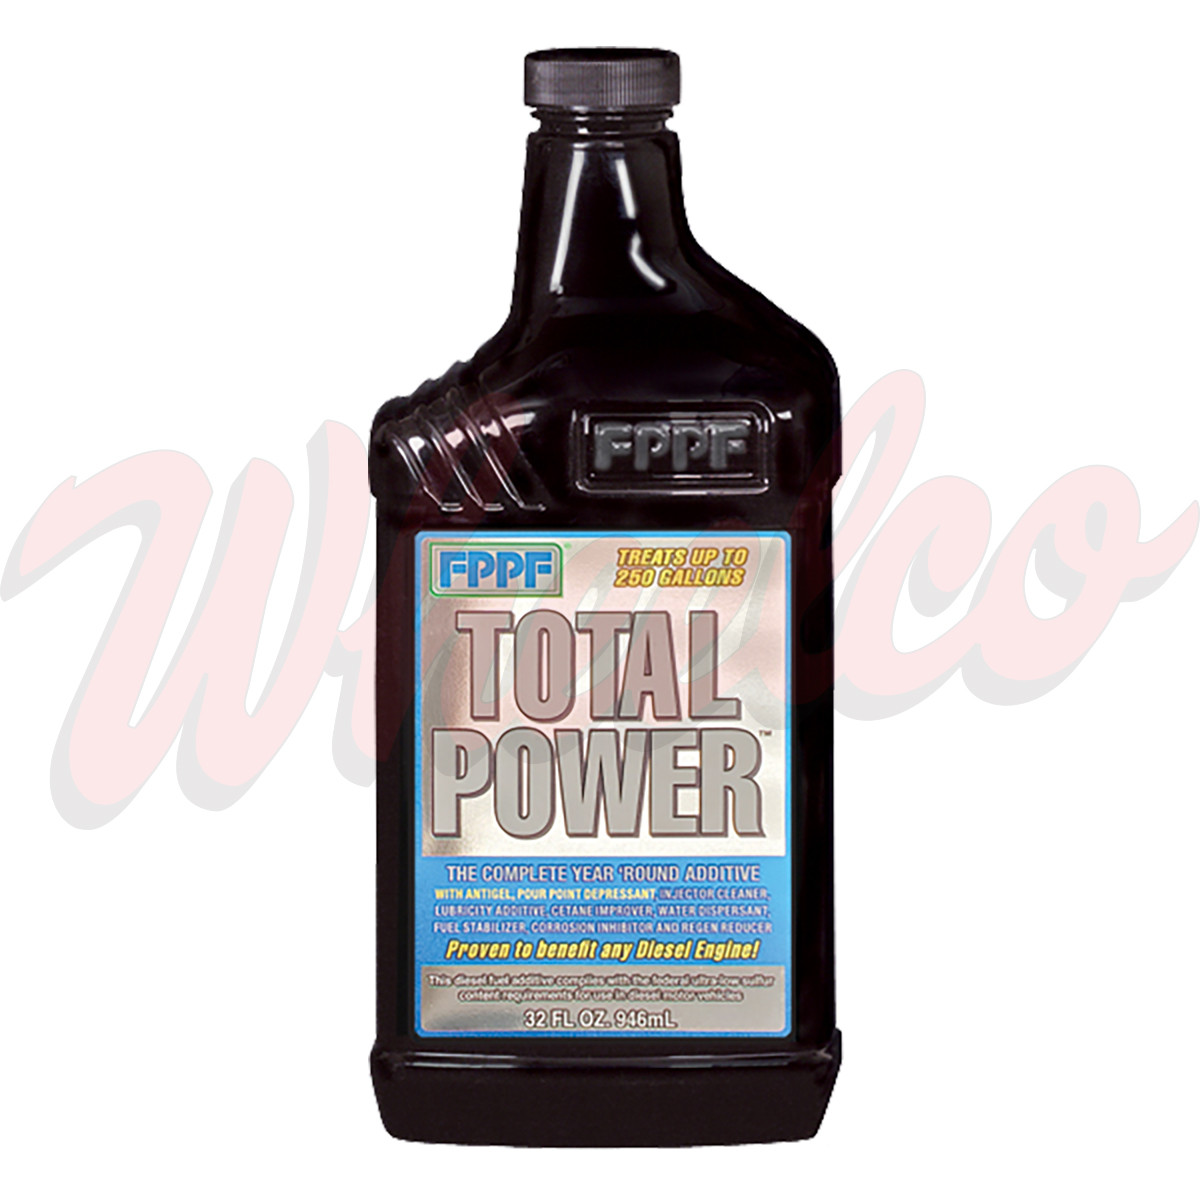 00343_FPPF-Chemical-Co-Inc.Chemicals-Oils-and-Lubricants.Fuel-Additives.1